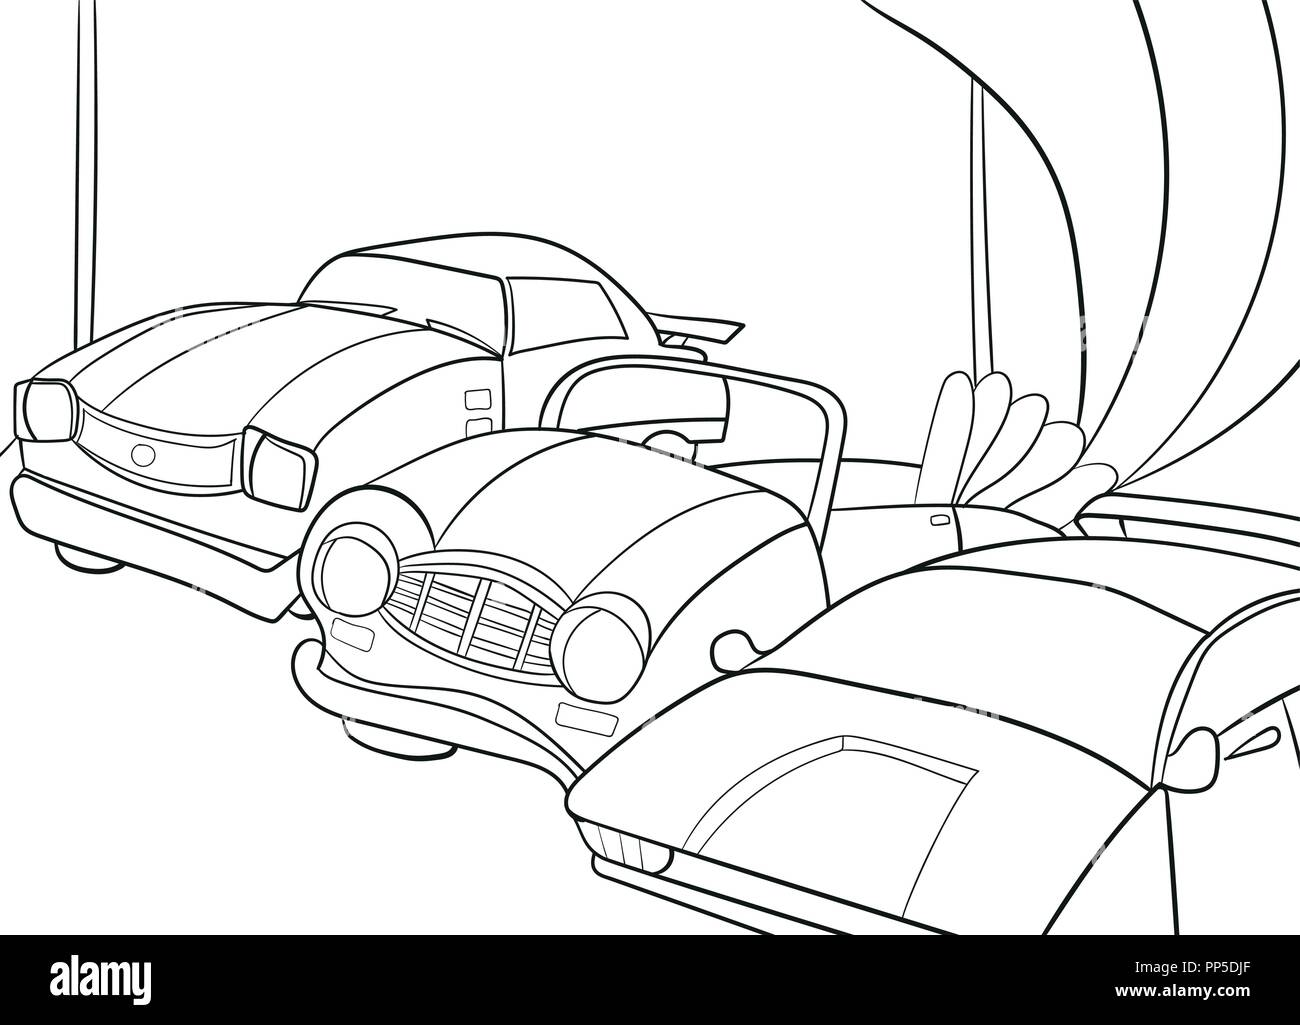 - Childrens Cartoon Coloring Book For Boys. Vector Illustration